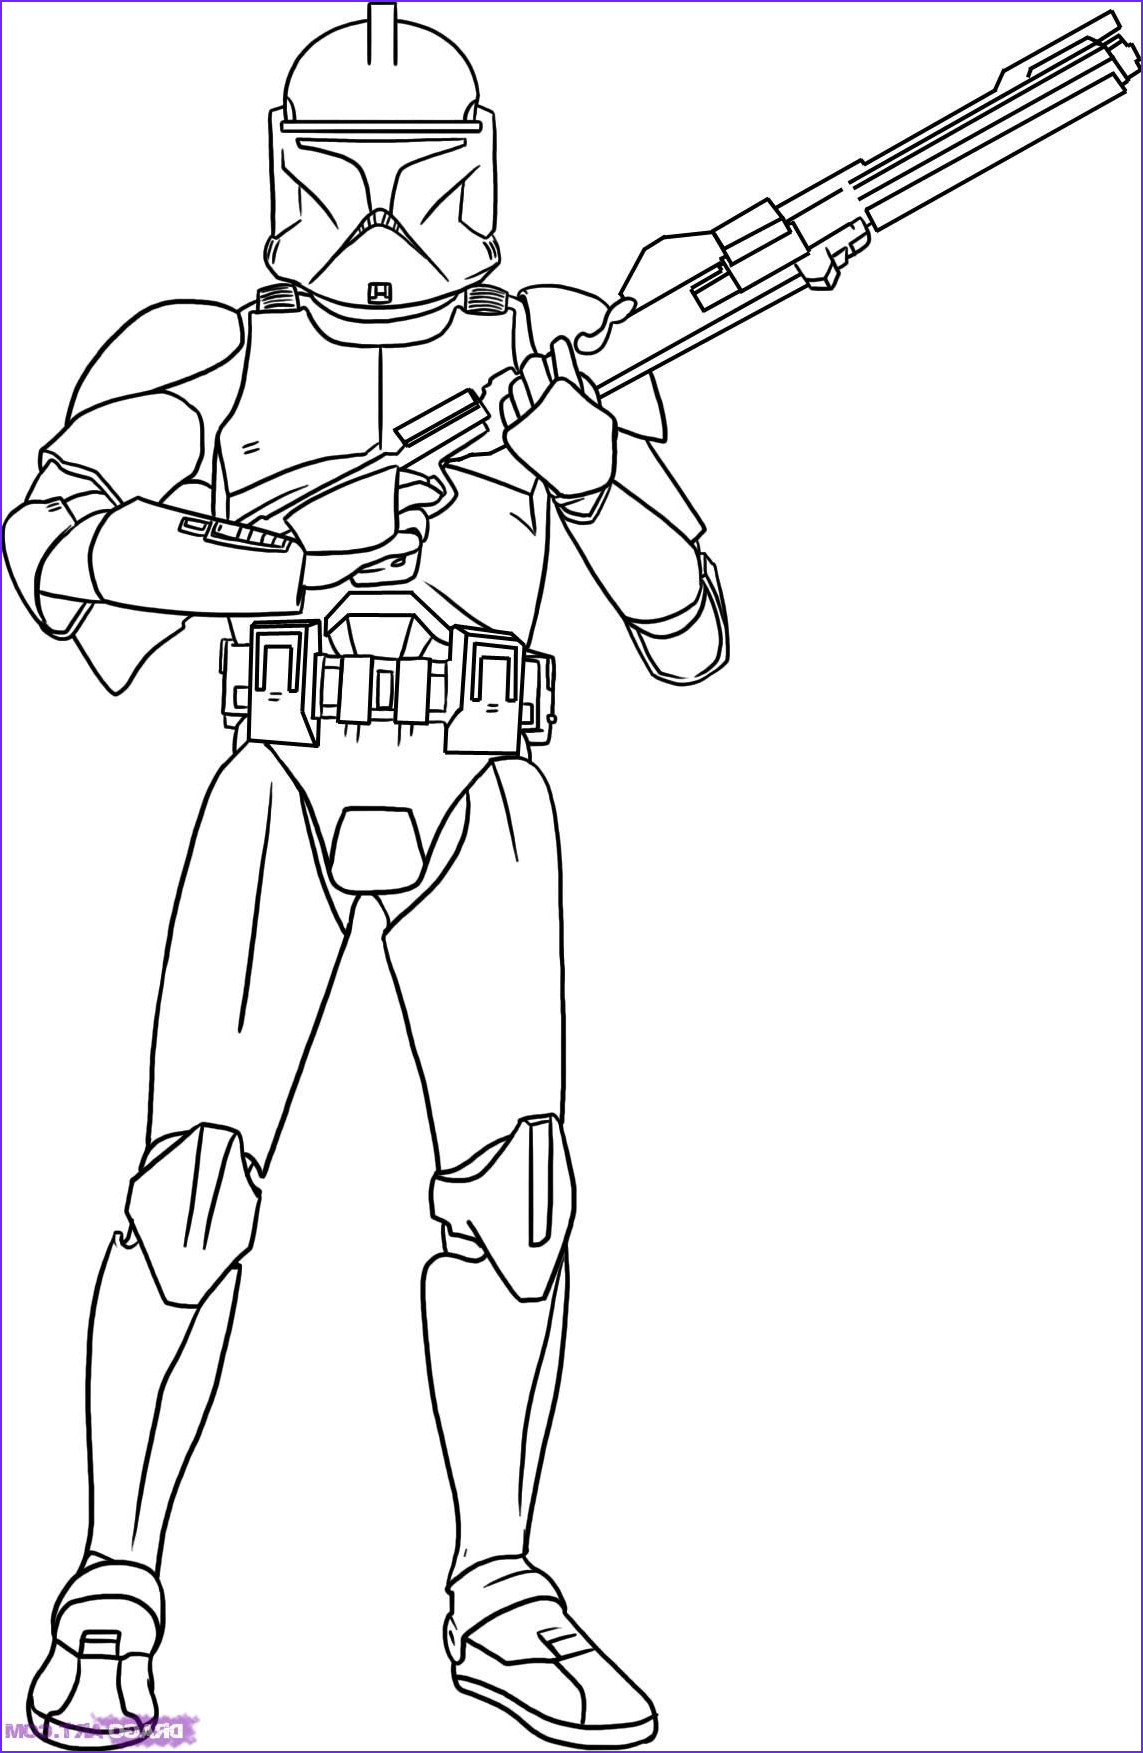 Star Wars Coloring Pages Free Inspirational Photography Star Wars Coloring Pages Free Printable Star Wars